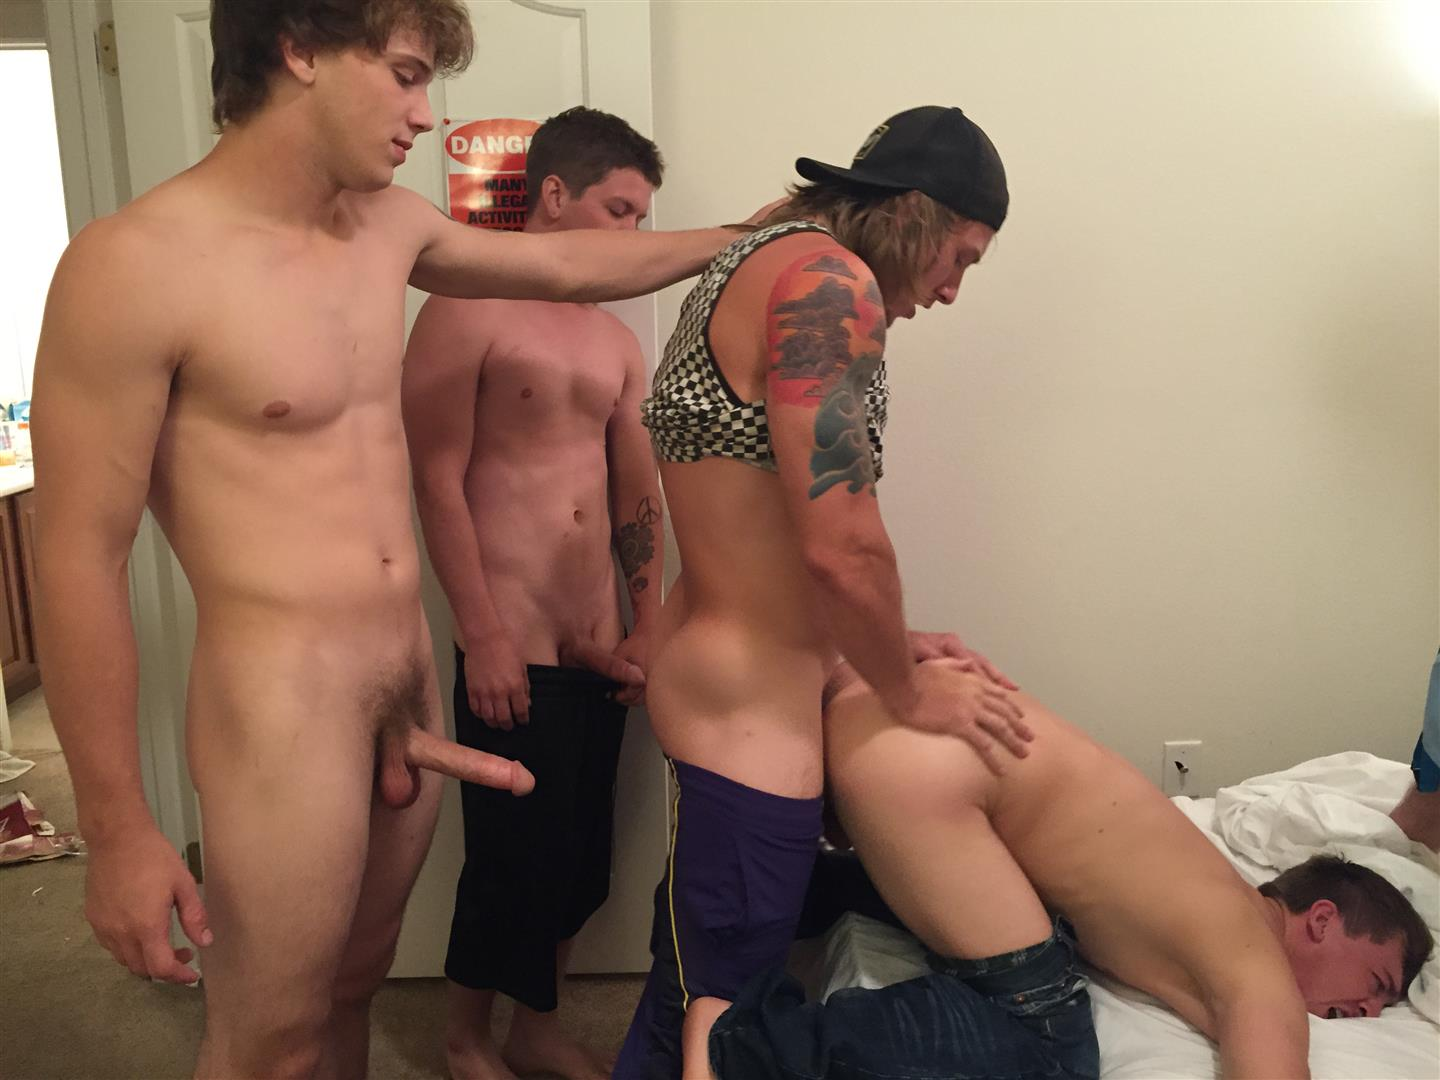 Fraternity X Naked Frat Boys Barebacking Freshman Ass Amateur Gay Porn 04 Fraternity Boys Take Turns Barebacking A Scared Freshman Ass